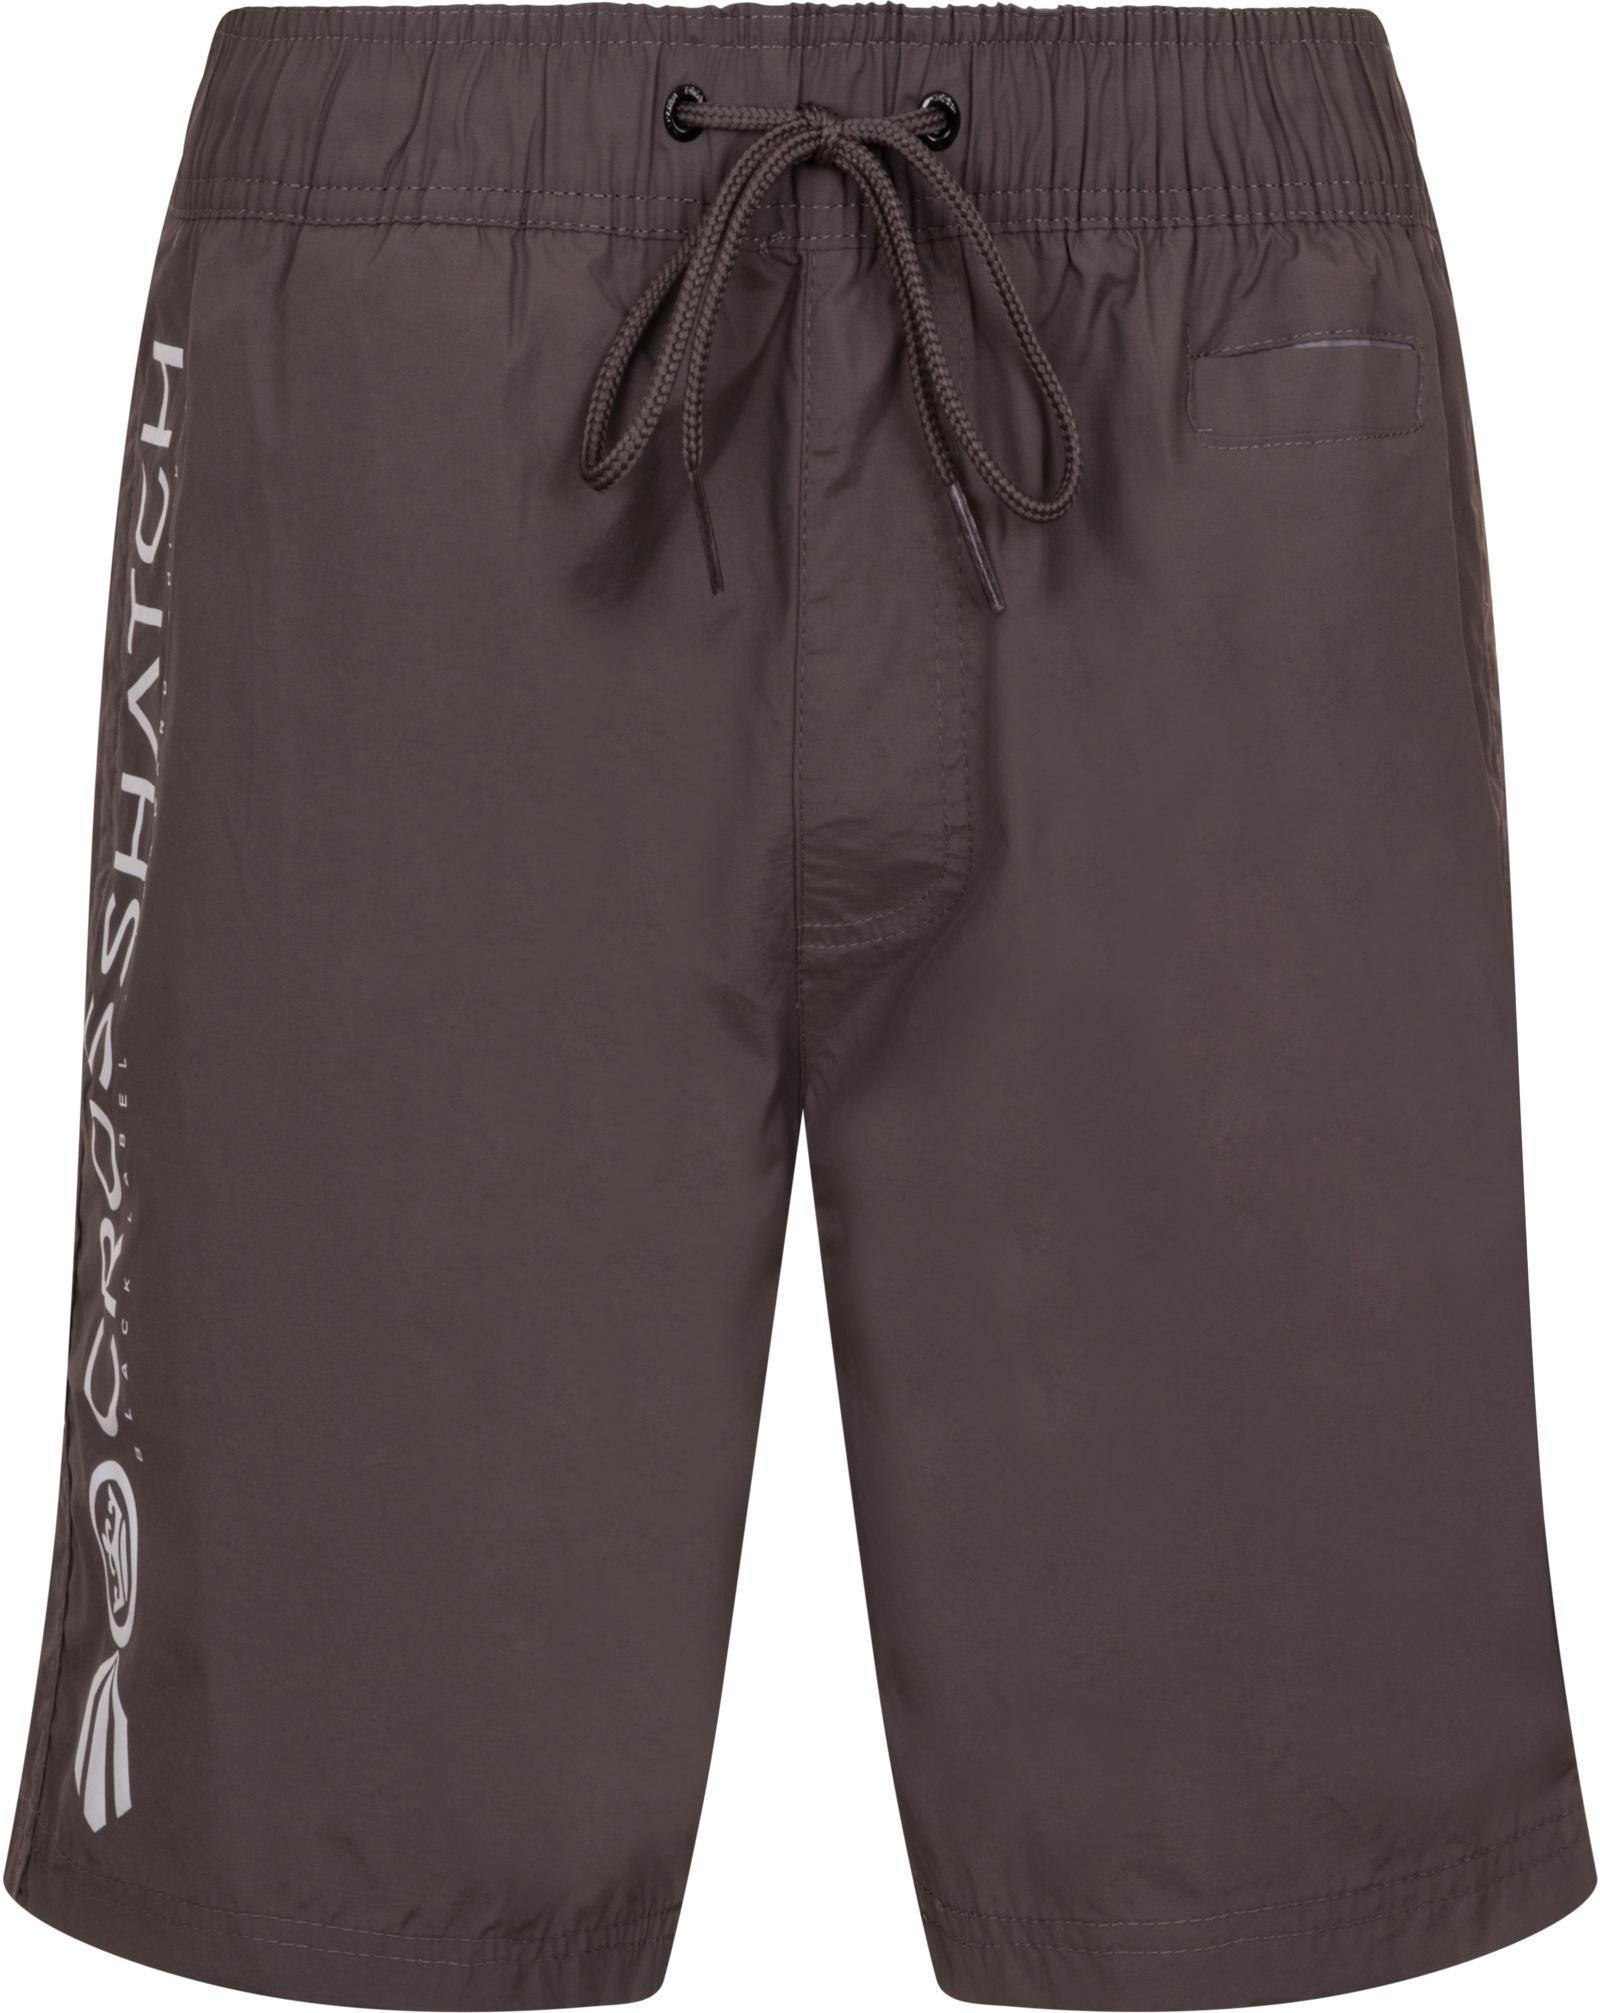 Crosshatch Shorts Swim Trunks Assorted Fit Styles